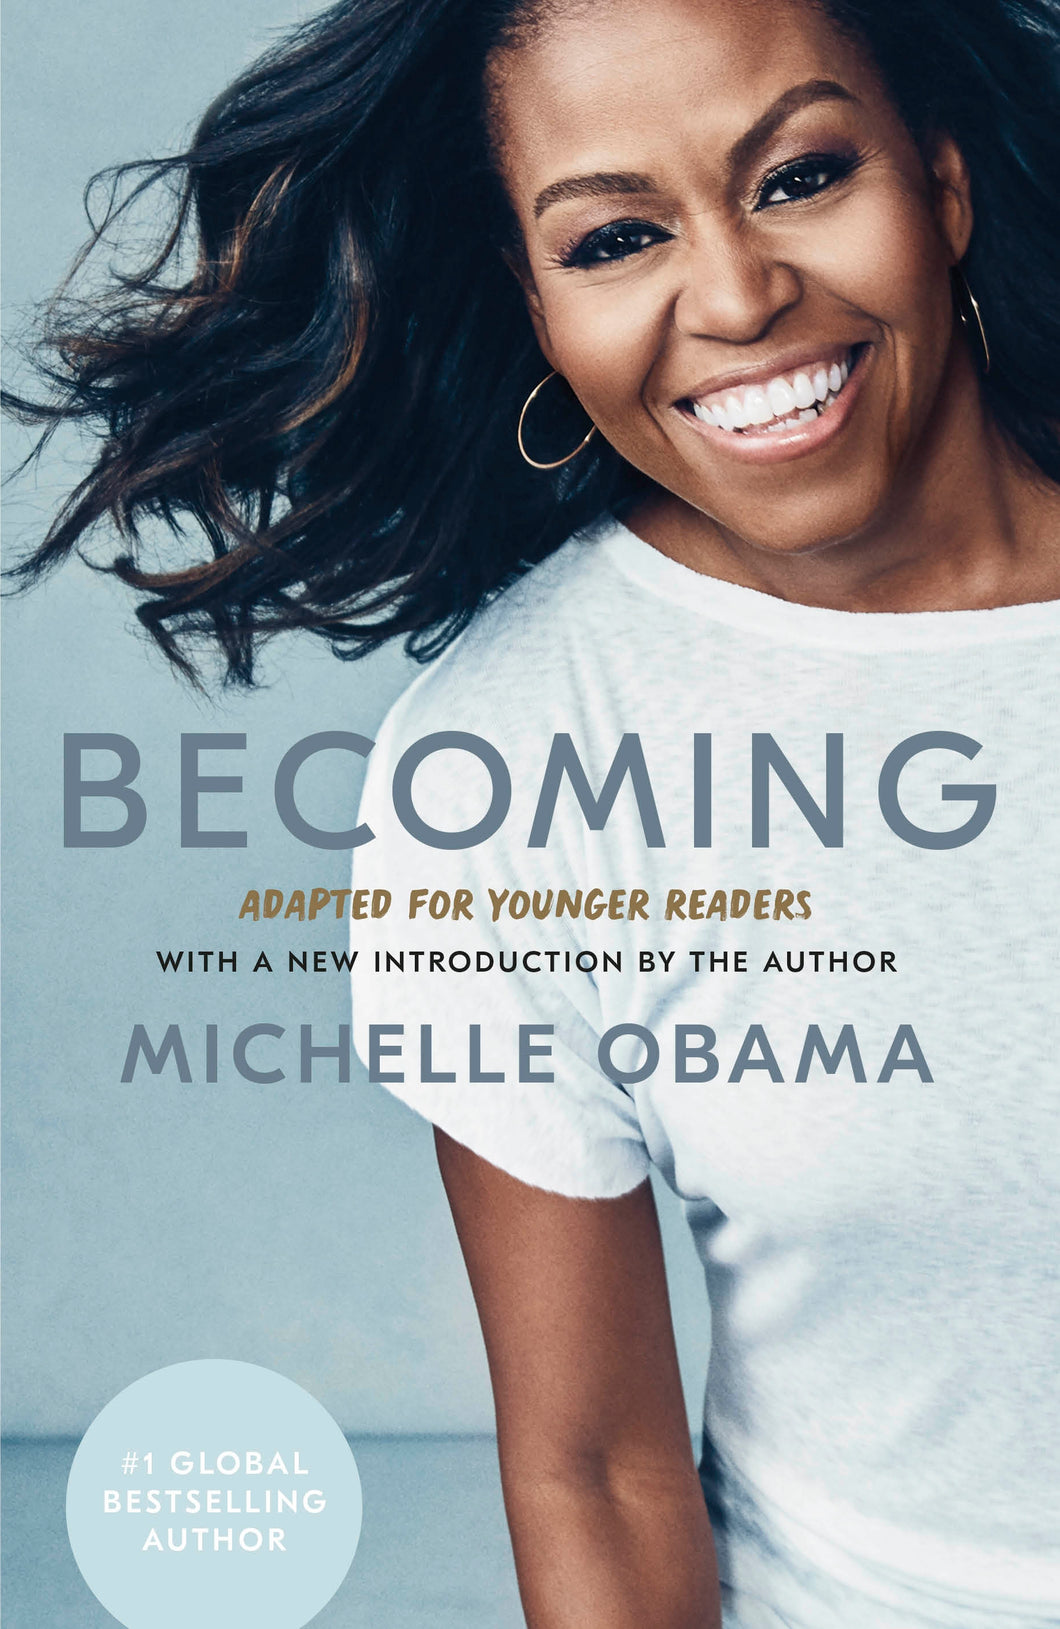 Becoming: Adapted for Young Readers (Pre-Order, March 2)